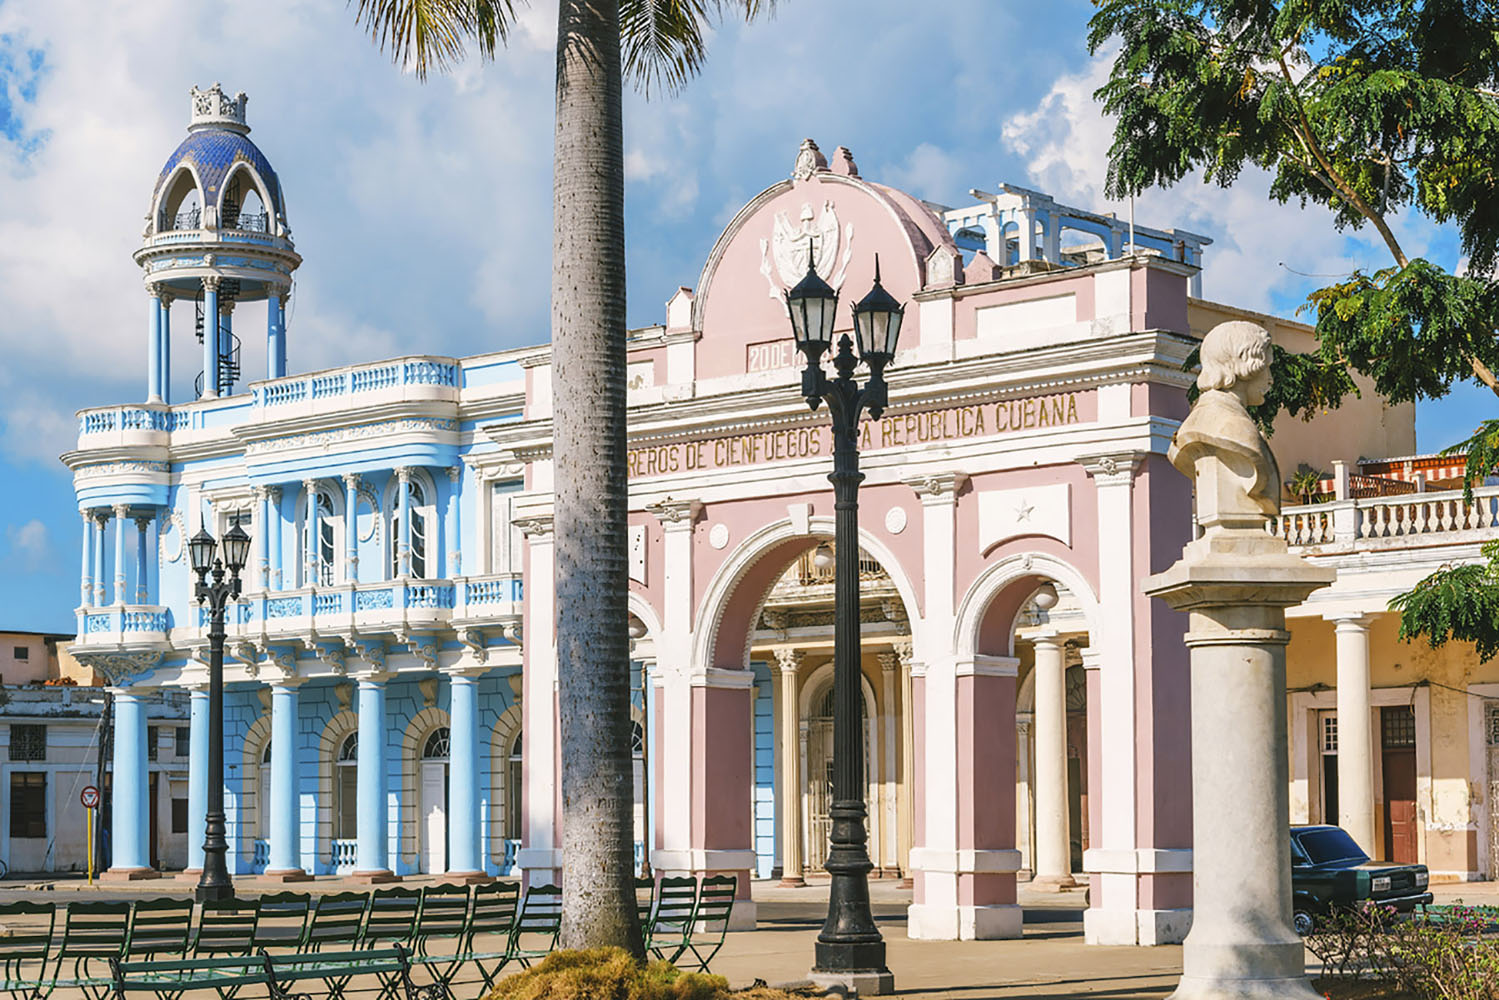 Cienfuegos is a UNESCO World Heritage Site known for its beautiful architecture and French influences.